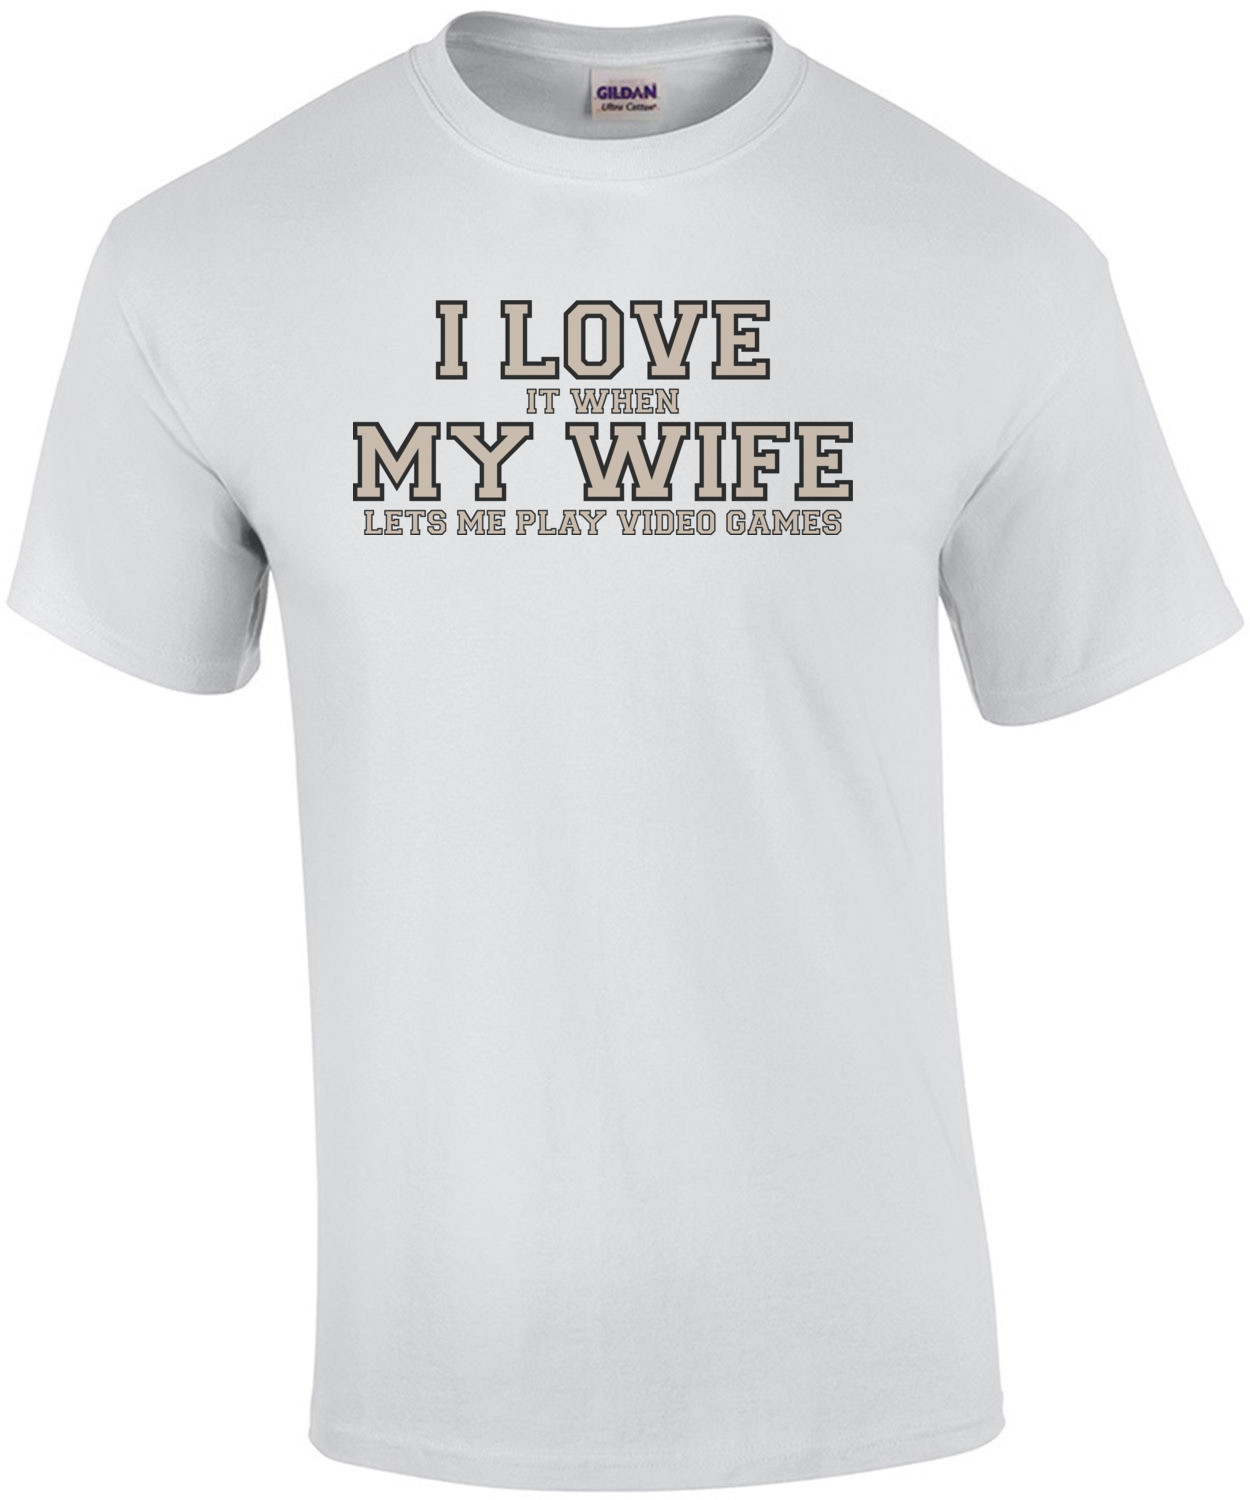 I love it when my wife lets me play video games - Funny T-Shirt